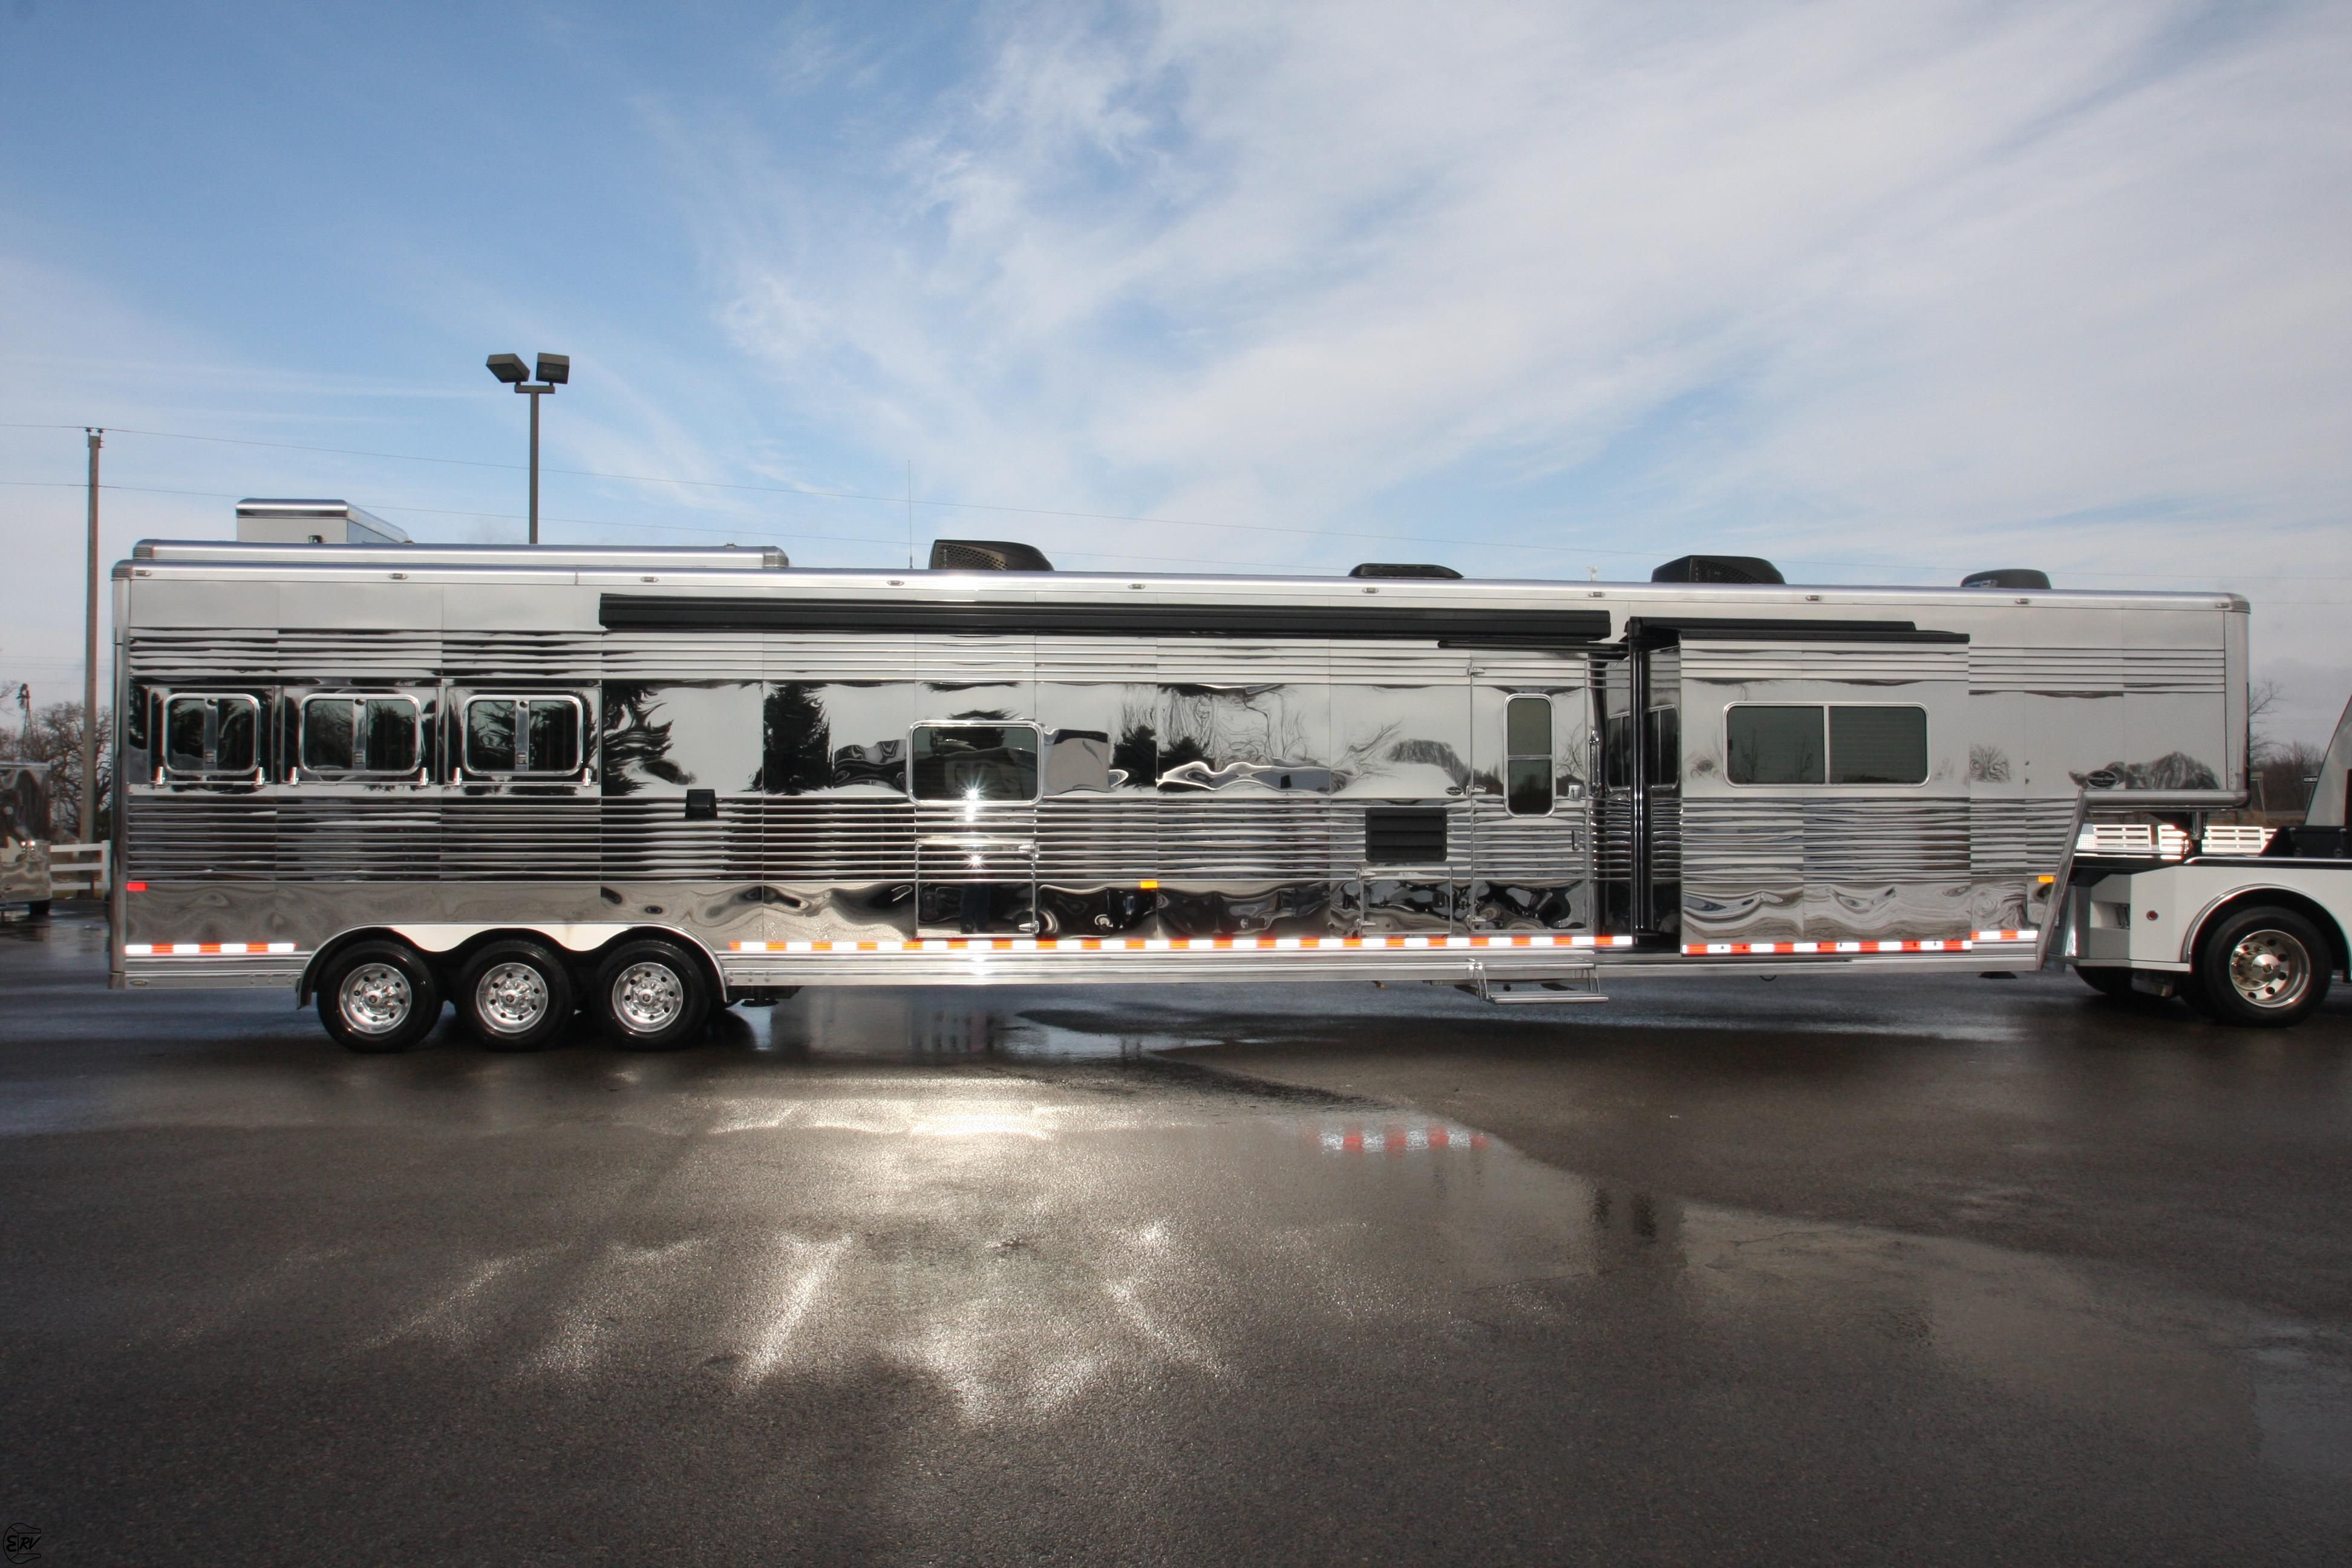 Luxury Trailer Homes | Rodeo Board | Pinterest